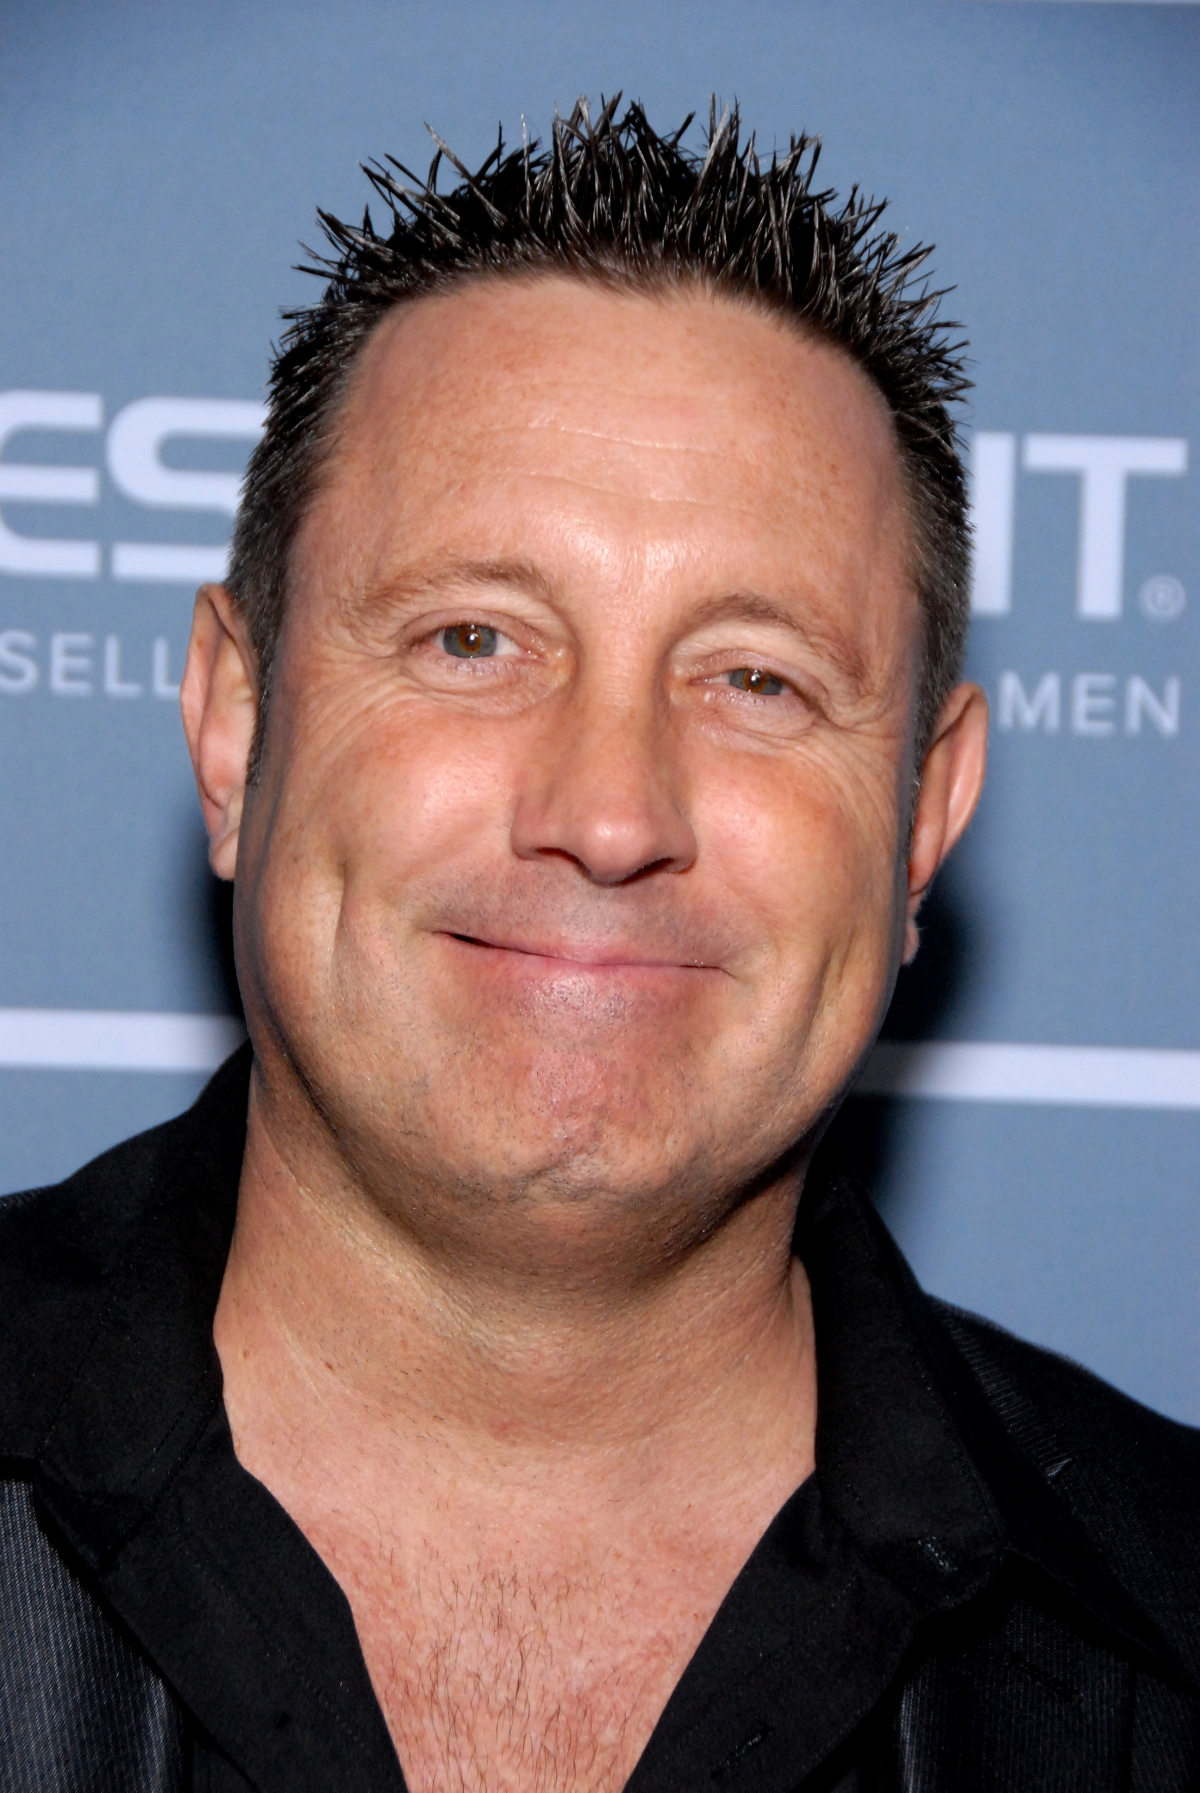 Brad Armstrong is a Canadian pornographic actor and director